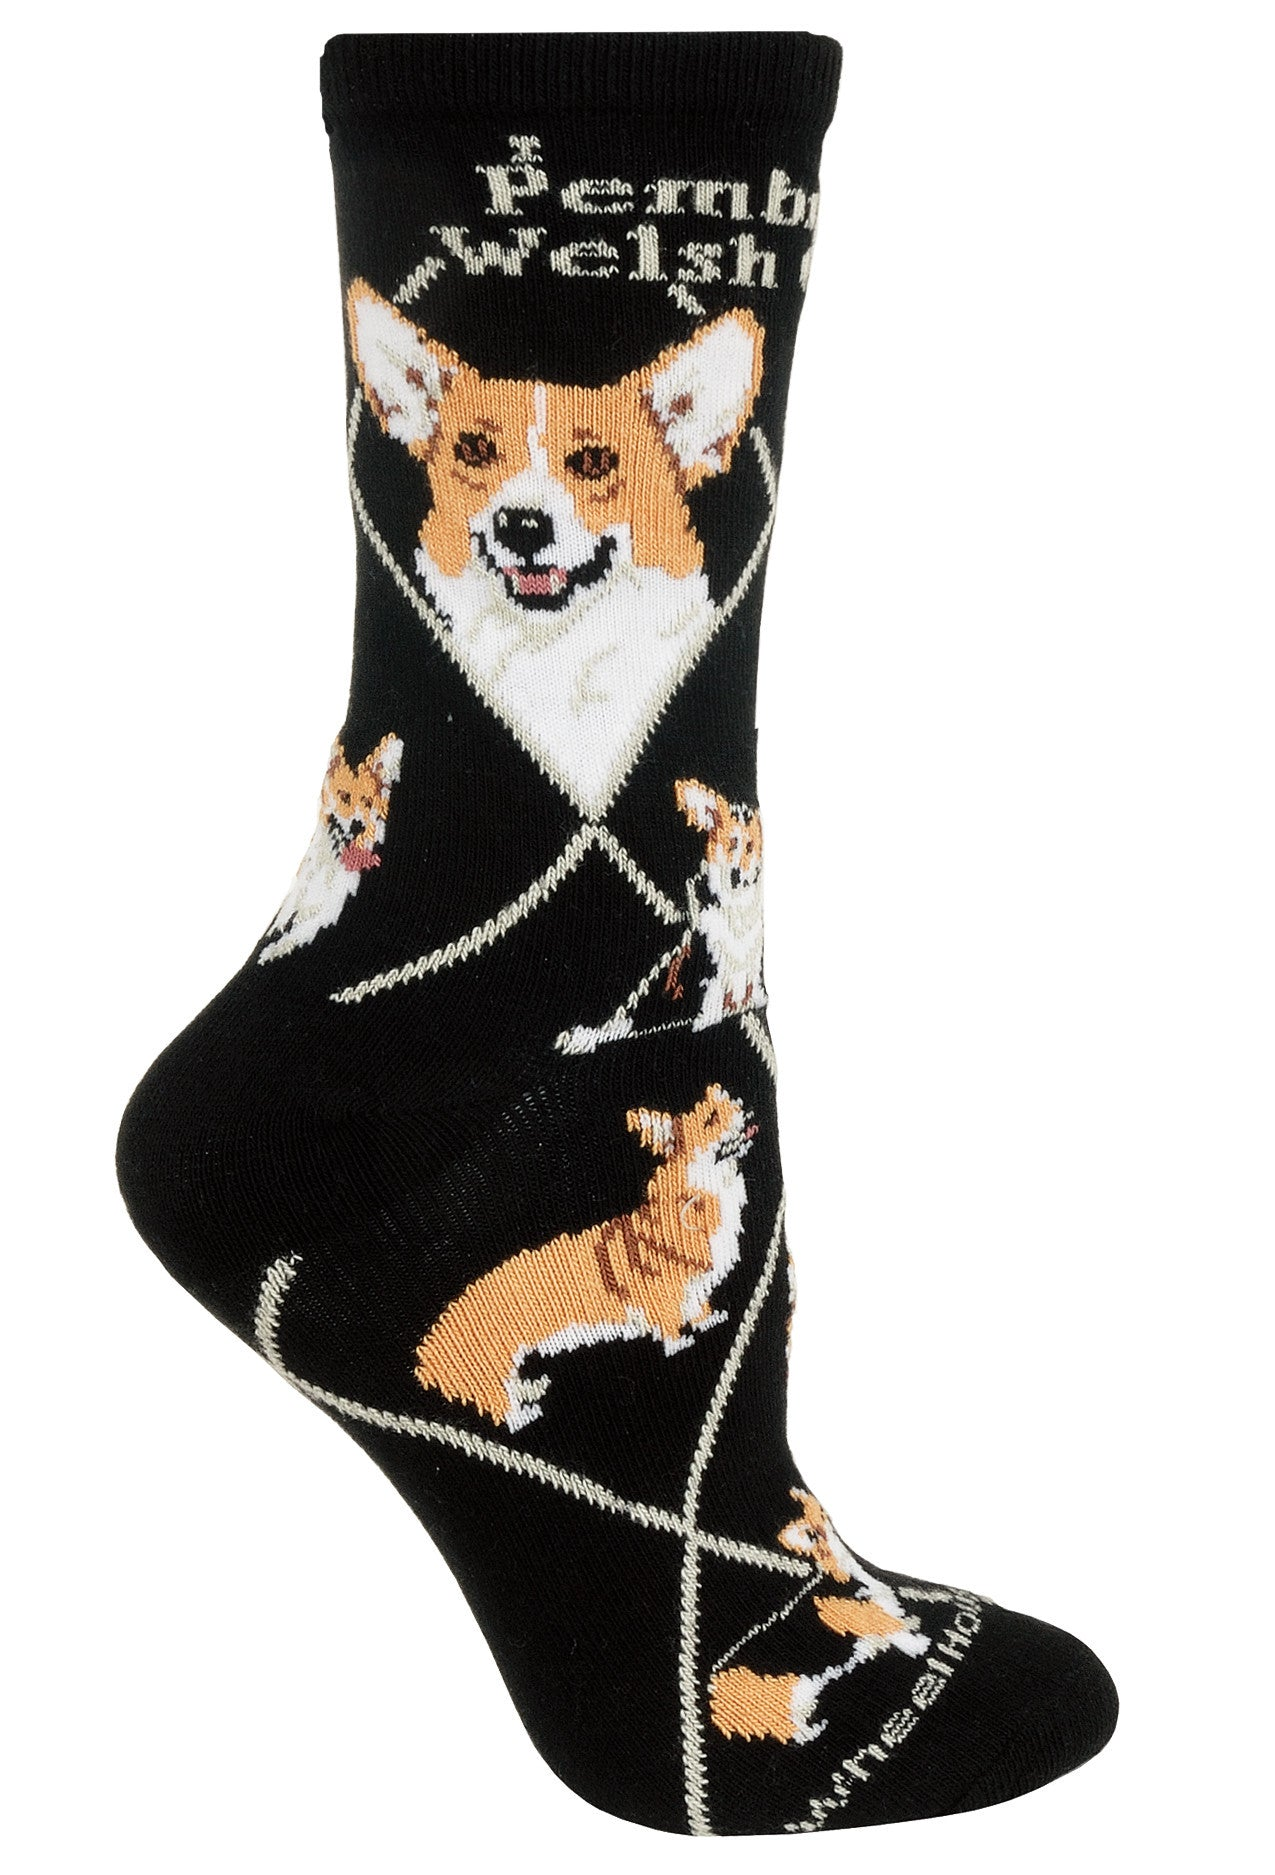 Corgi, Pembroke Welsh Crew Socks on Black